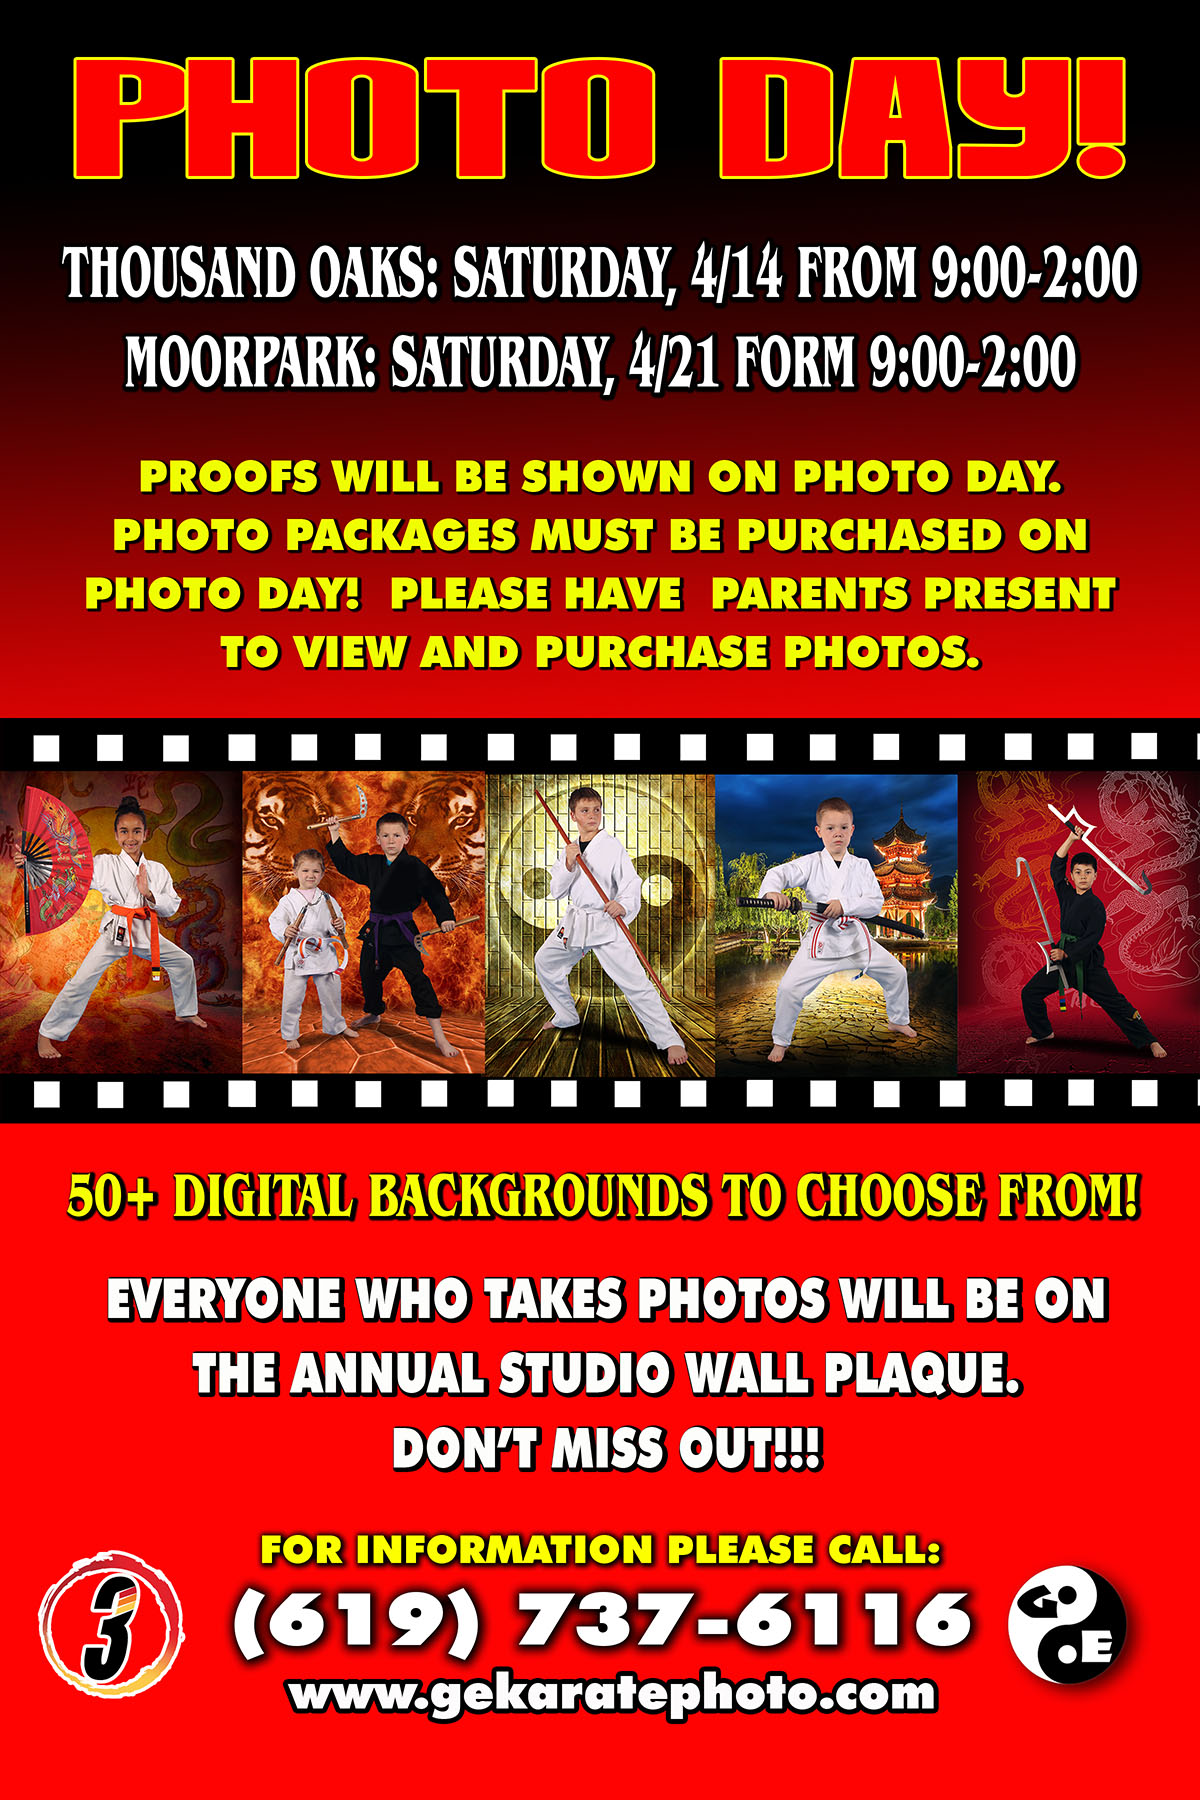 level 3 karate photos men women children self defense martial arts best classes moorpark thousand oaks